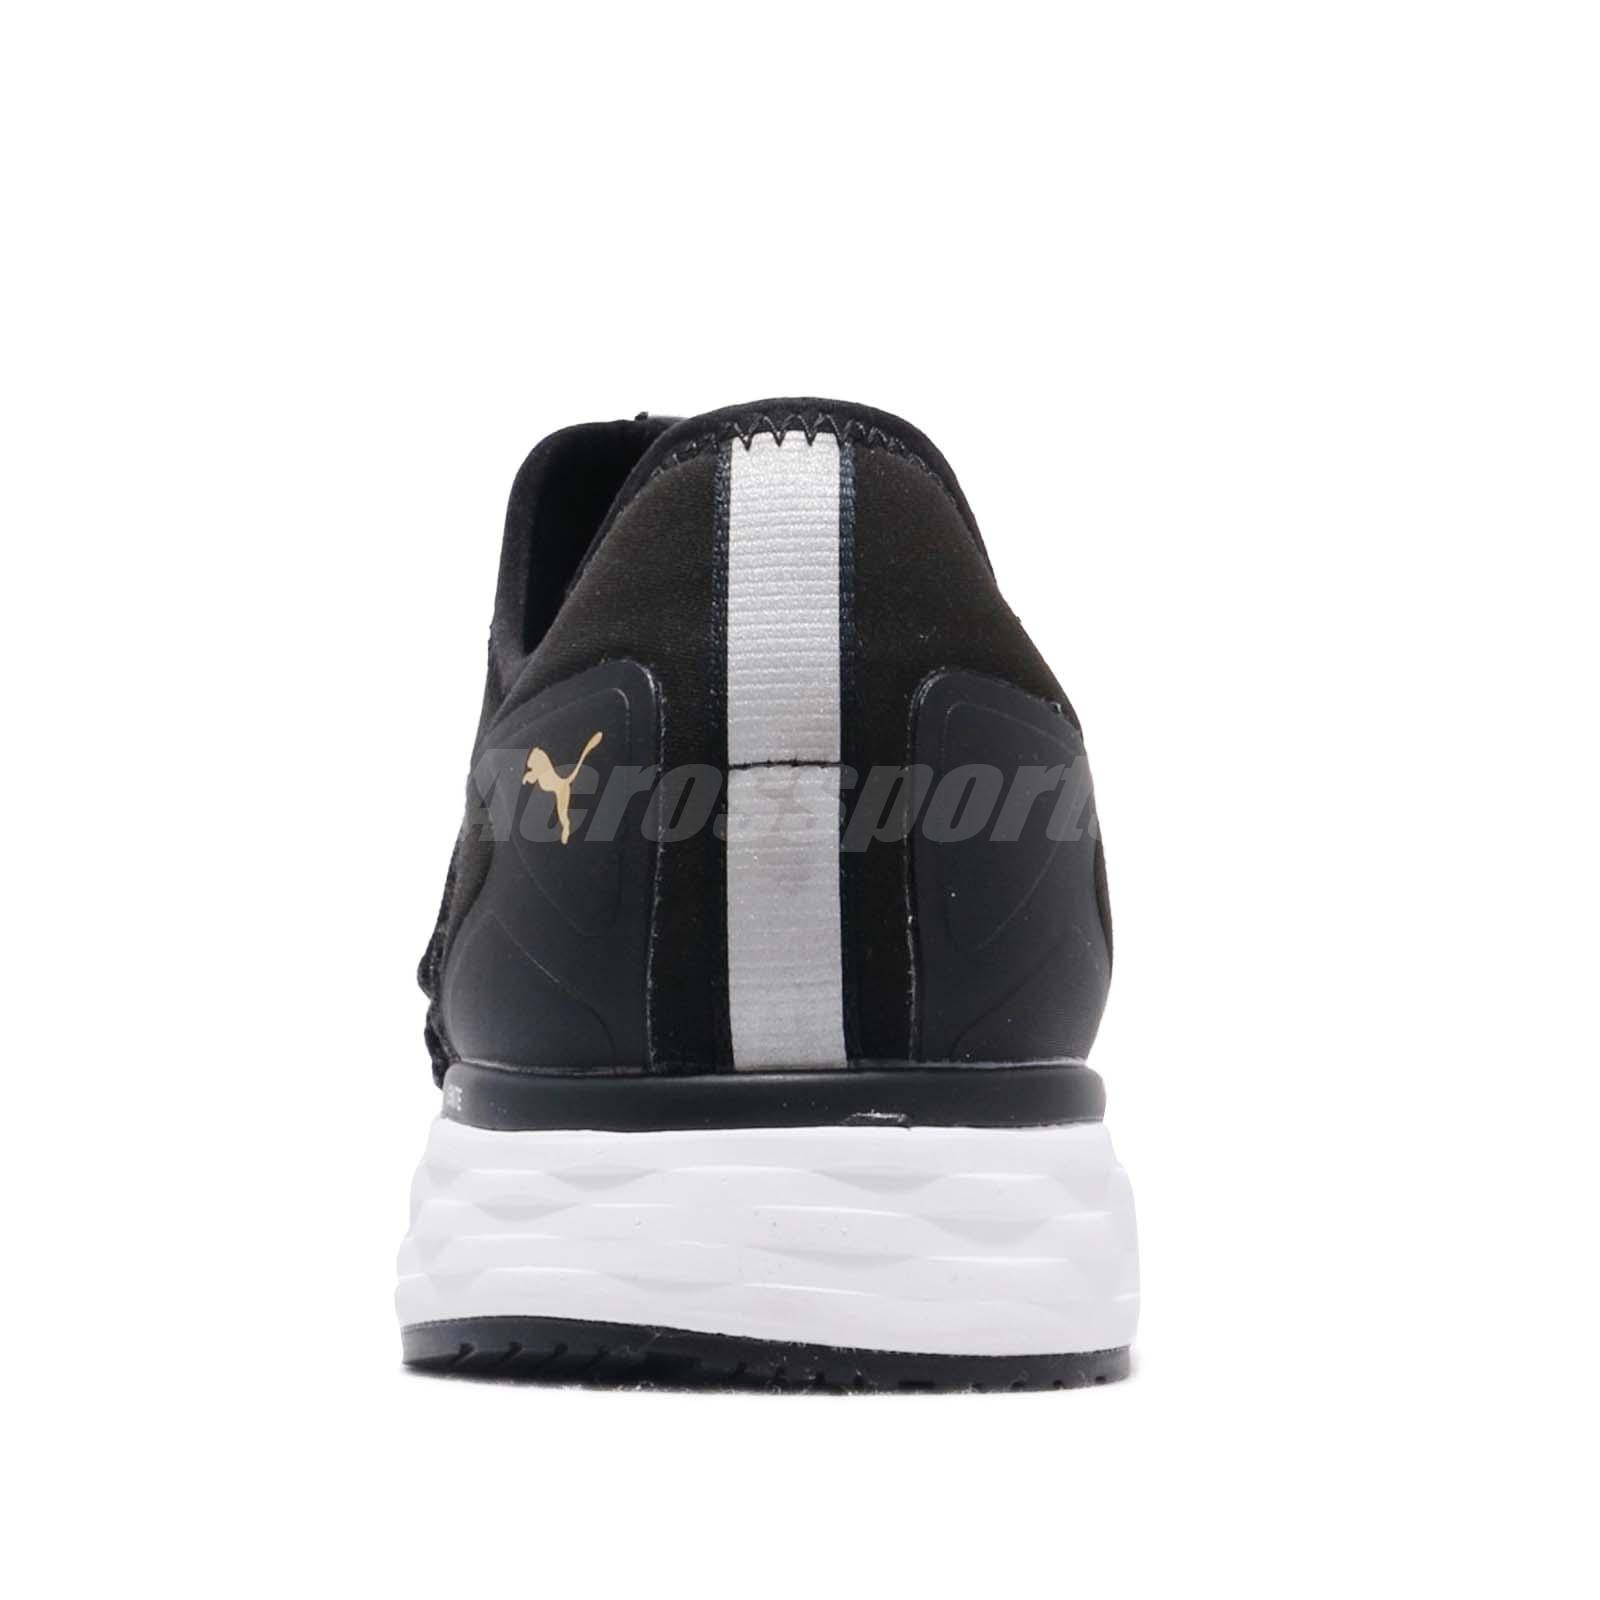 e510528979e227 Puma Speed 600 Fusefit Black White Taos Taupe Men Running Shoe ...